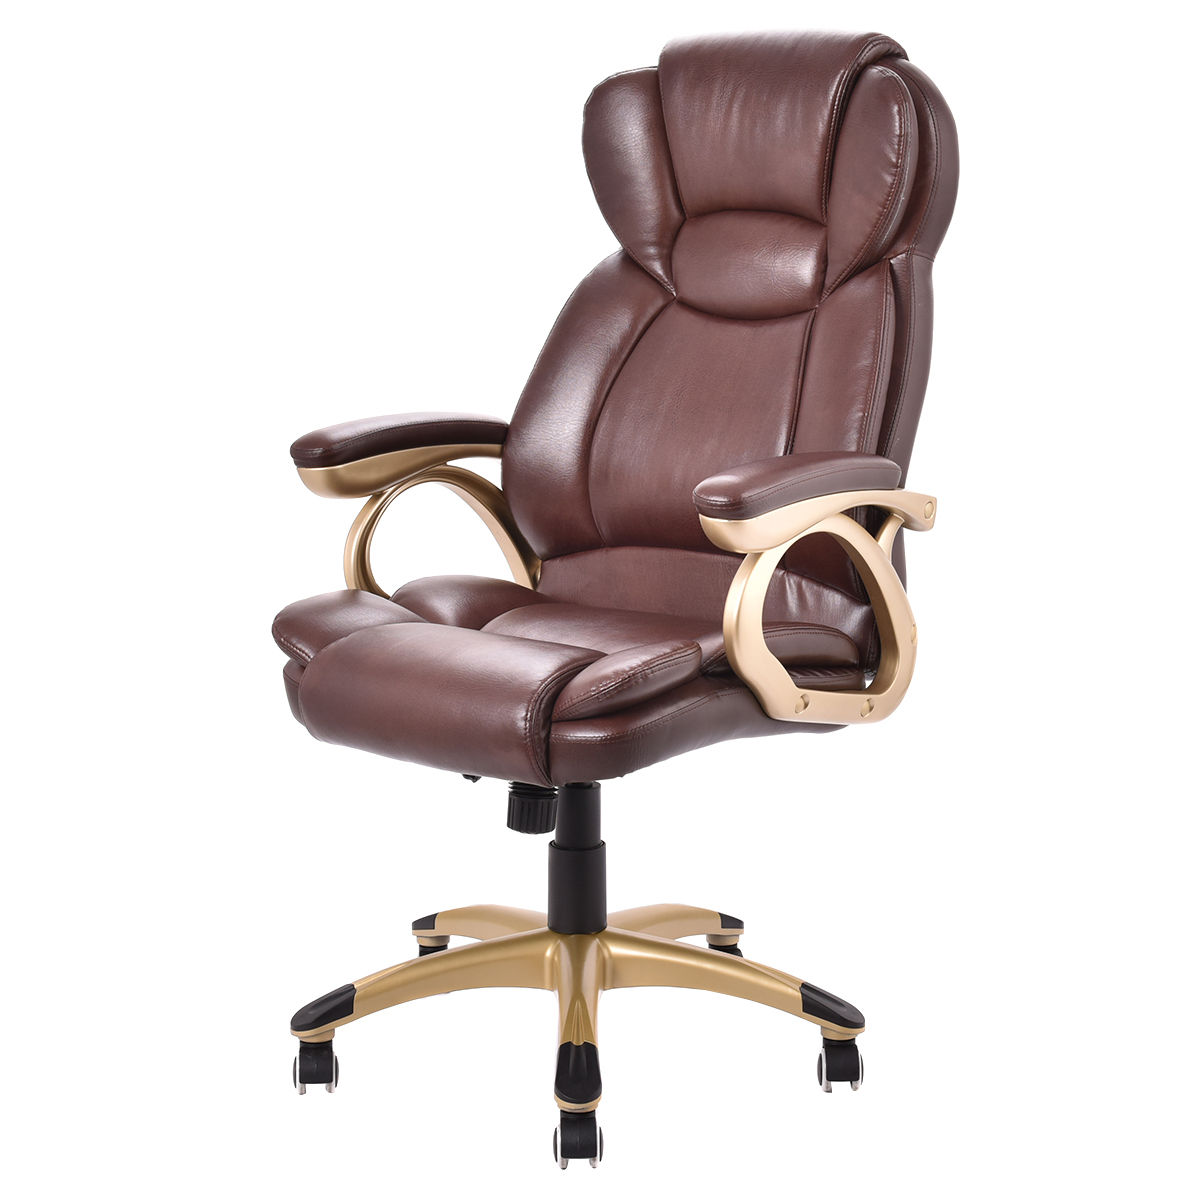 Costway ergonomic office chair pu leather high back executive computer desk task brown walmart com